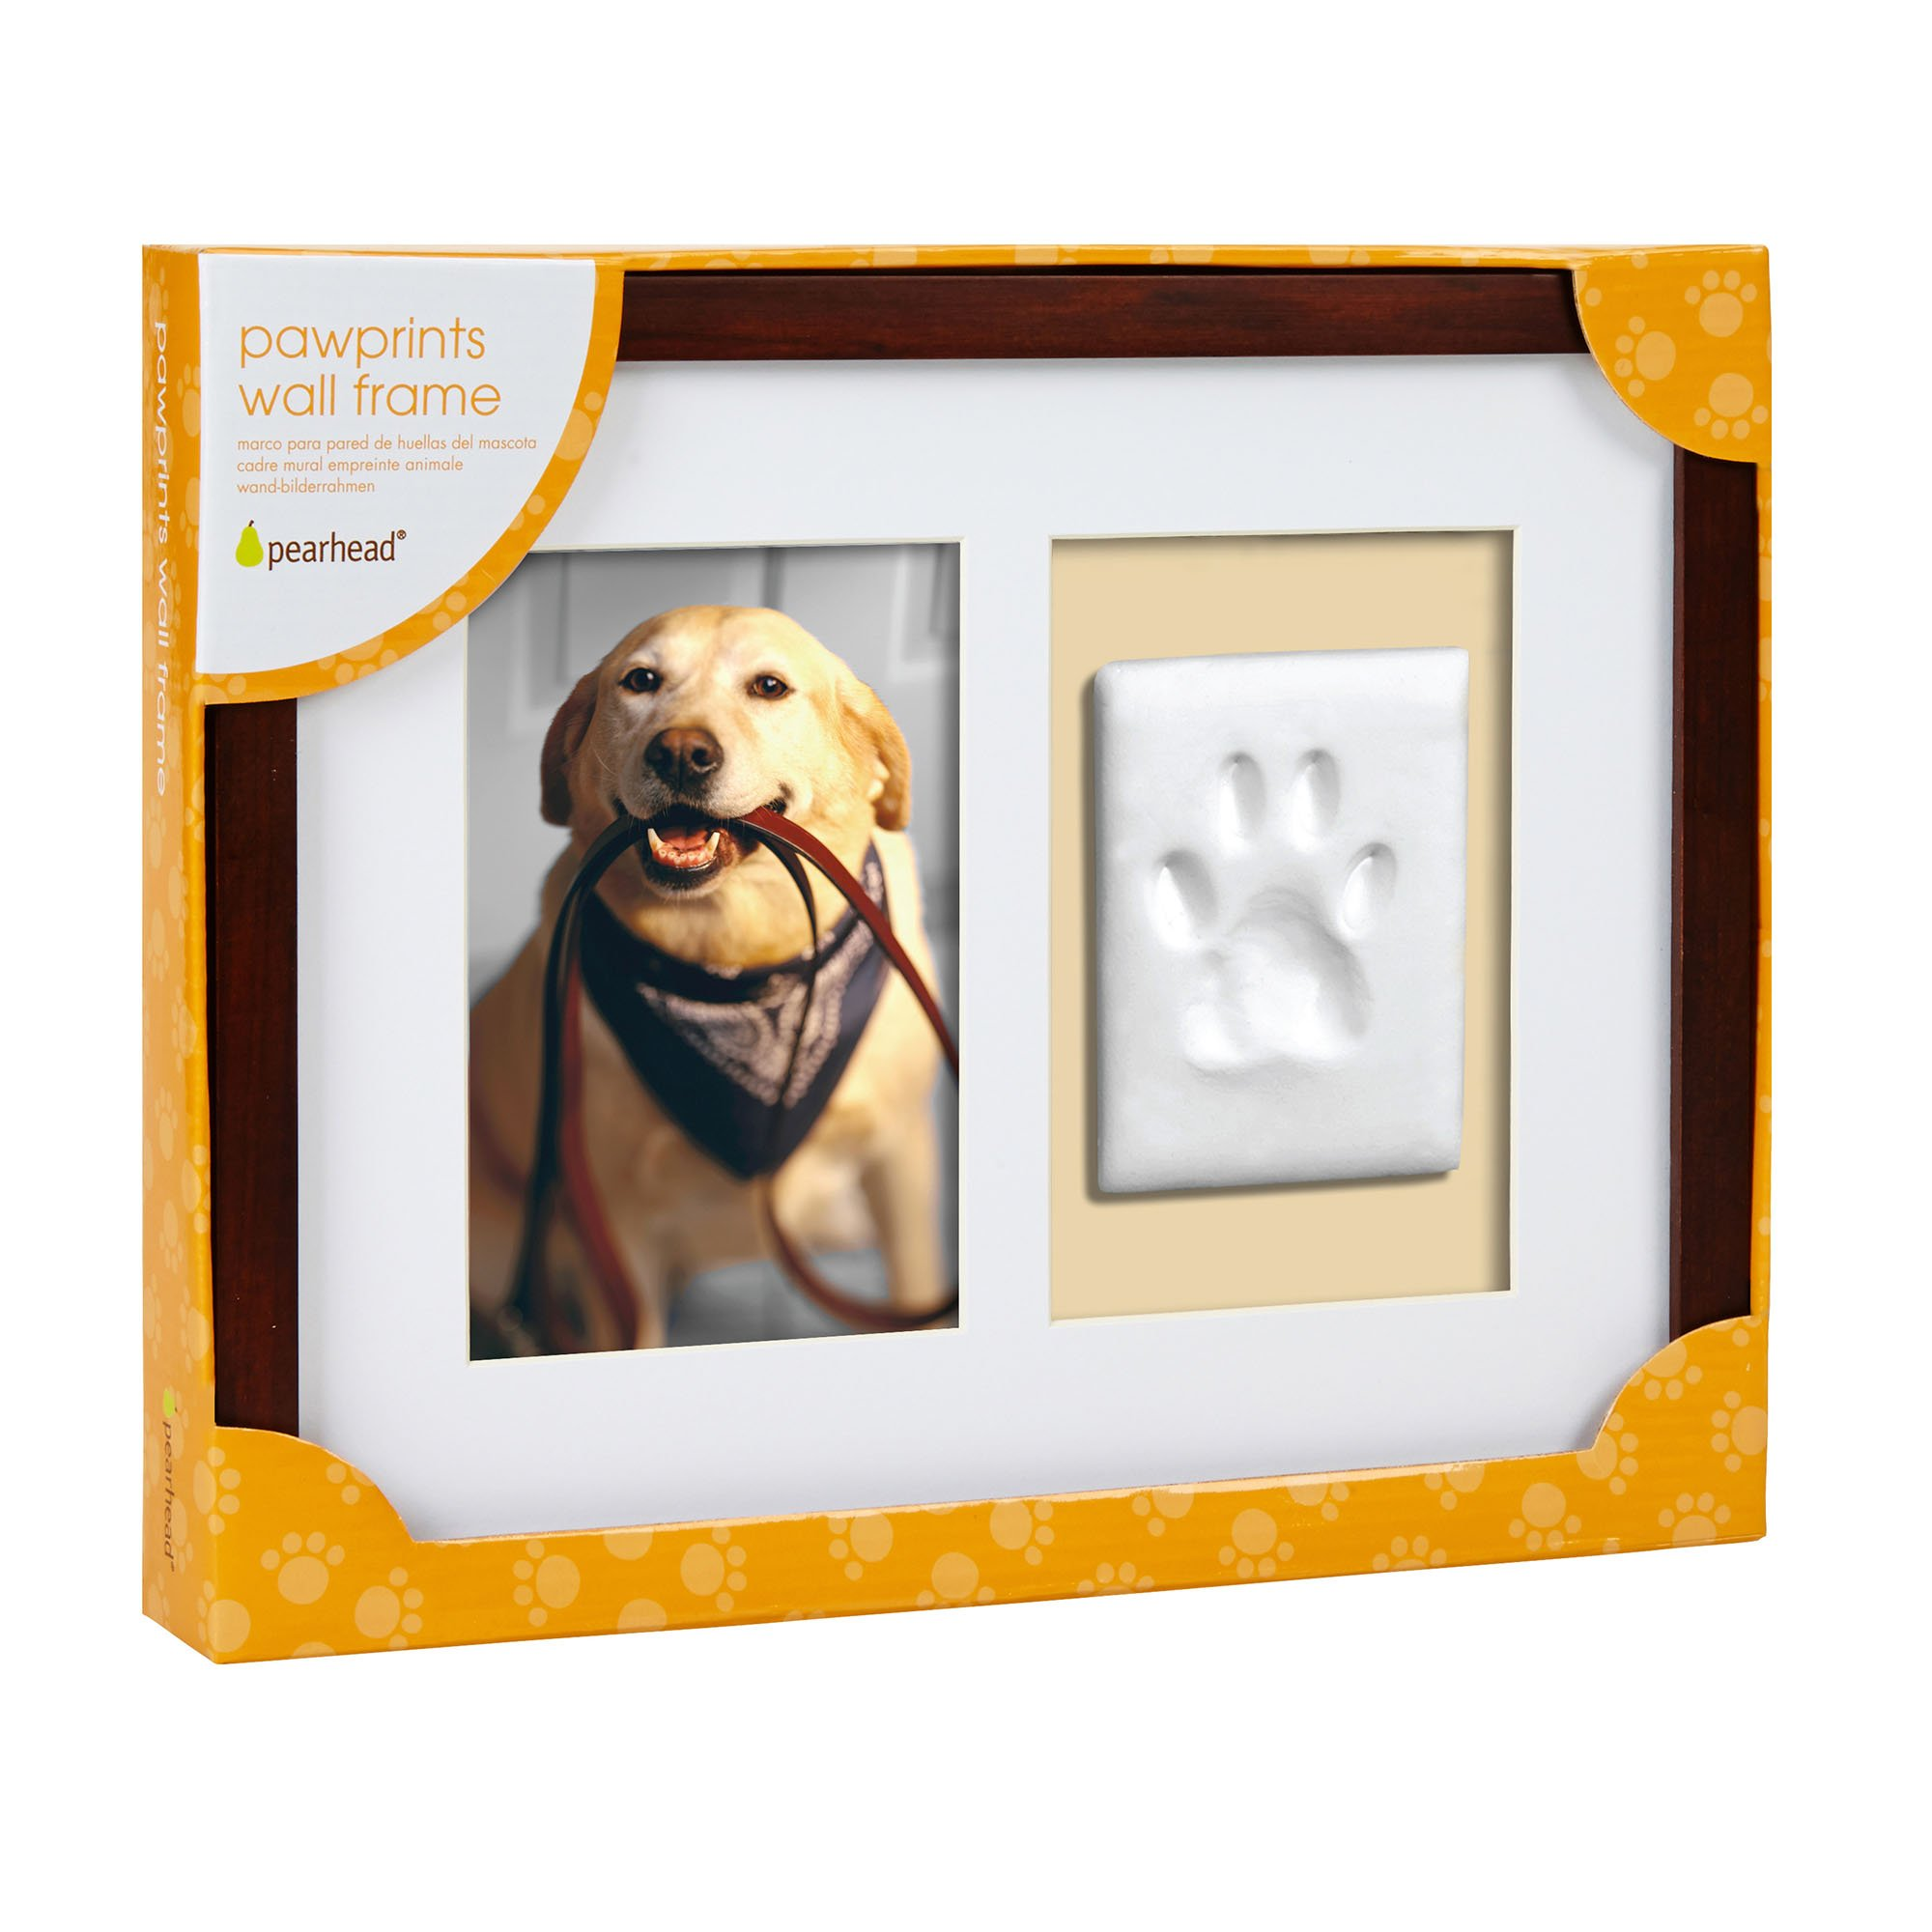 Pearhead pawprints wall picture frame and impression kit for dogs pearhead pawprints wall picture frame and impression kit for dogs or cats petco jeuxipadfo Images